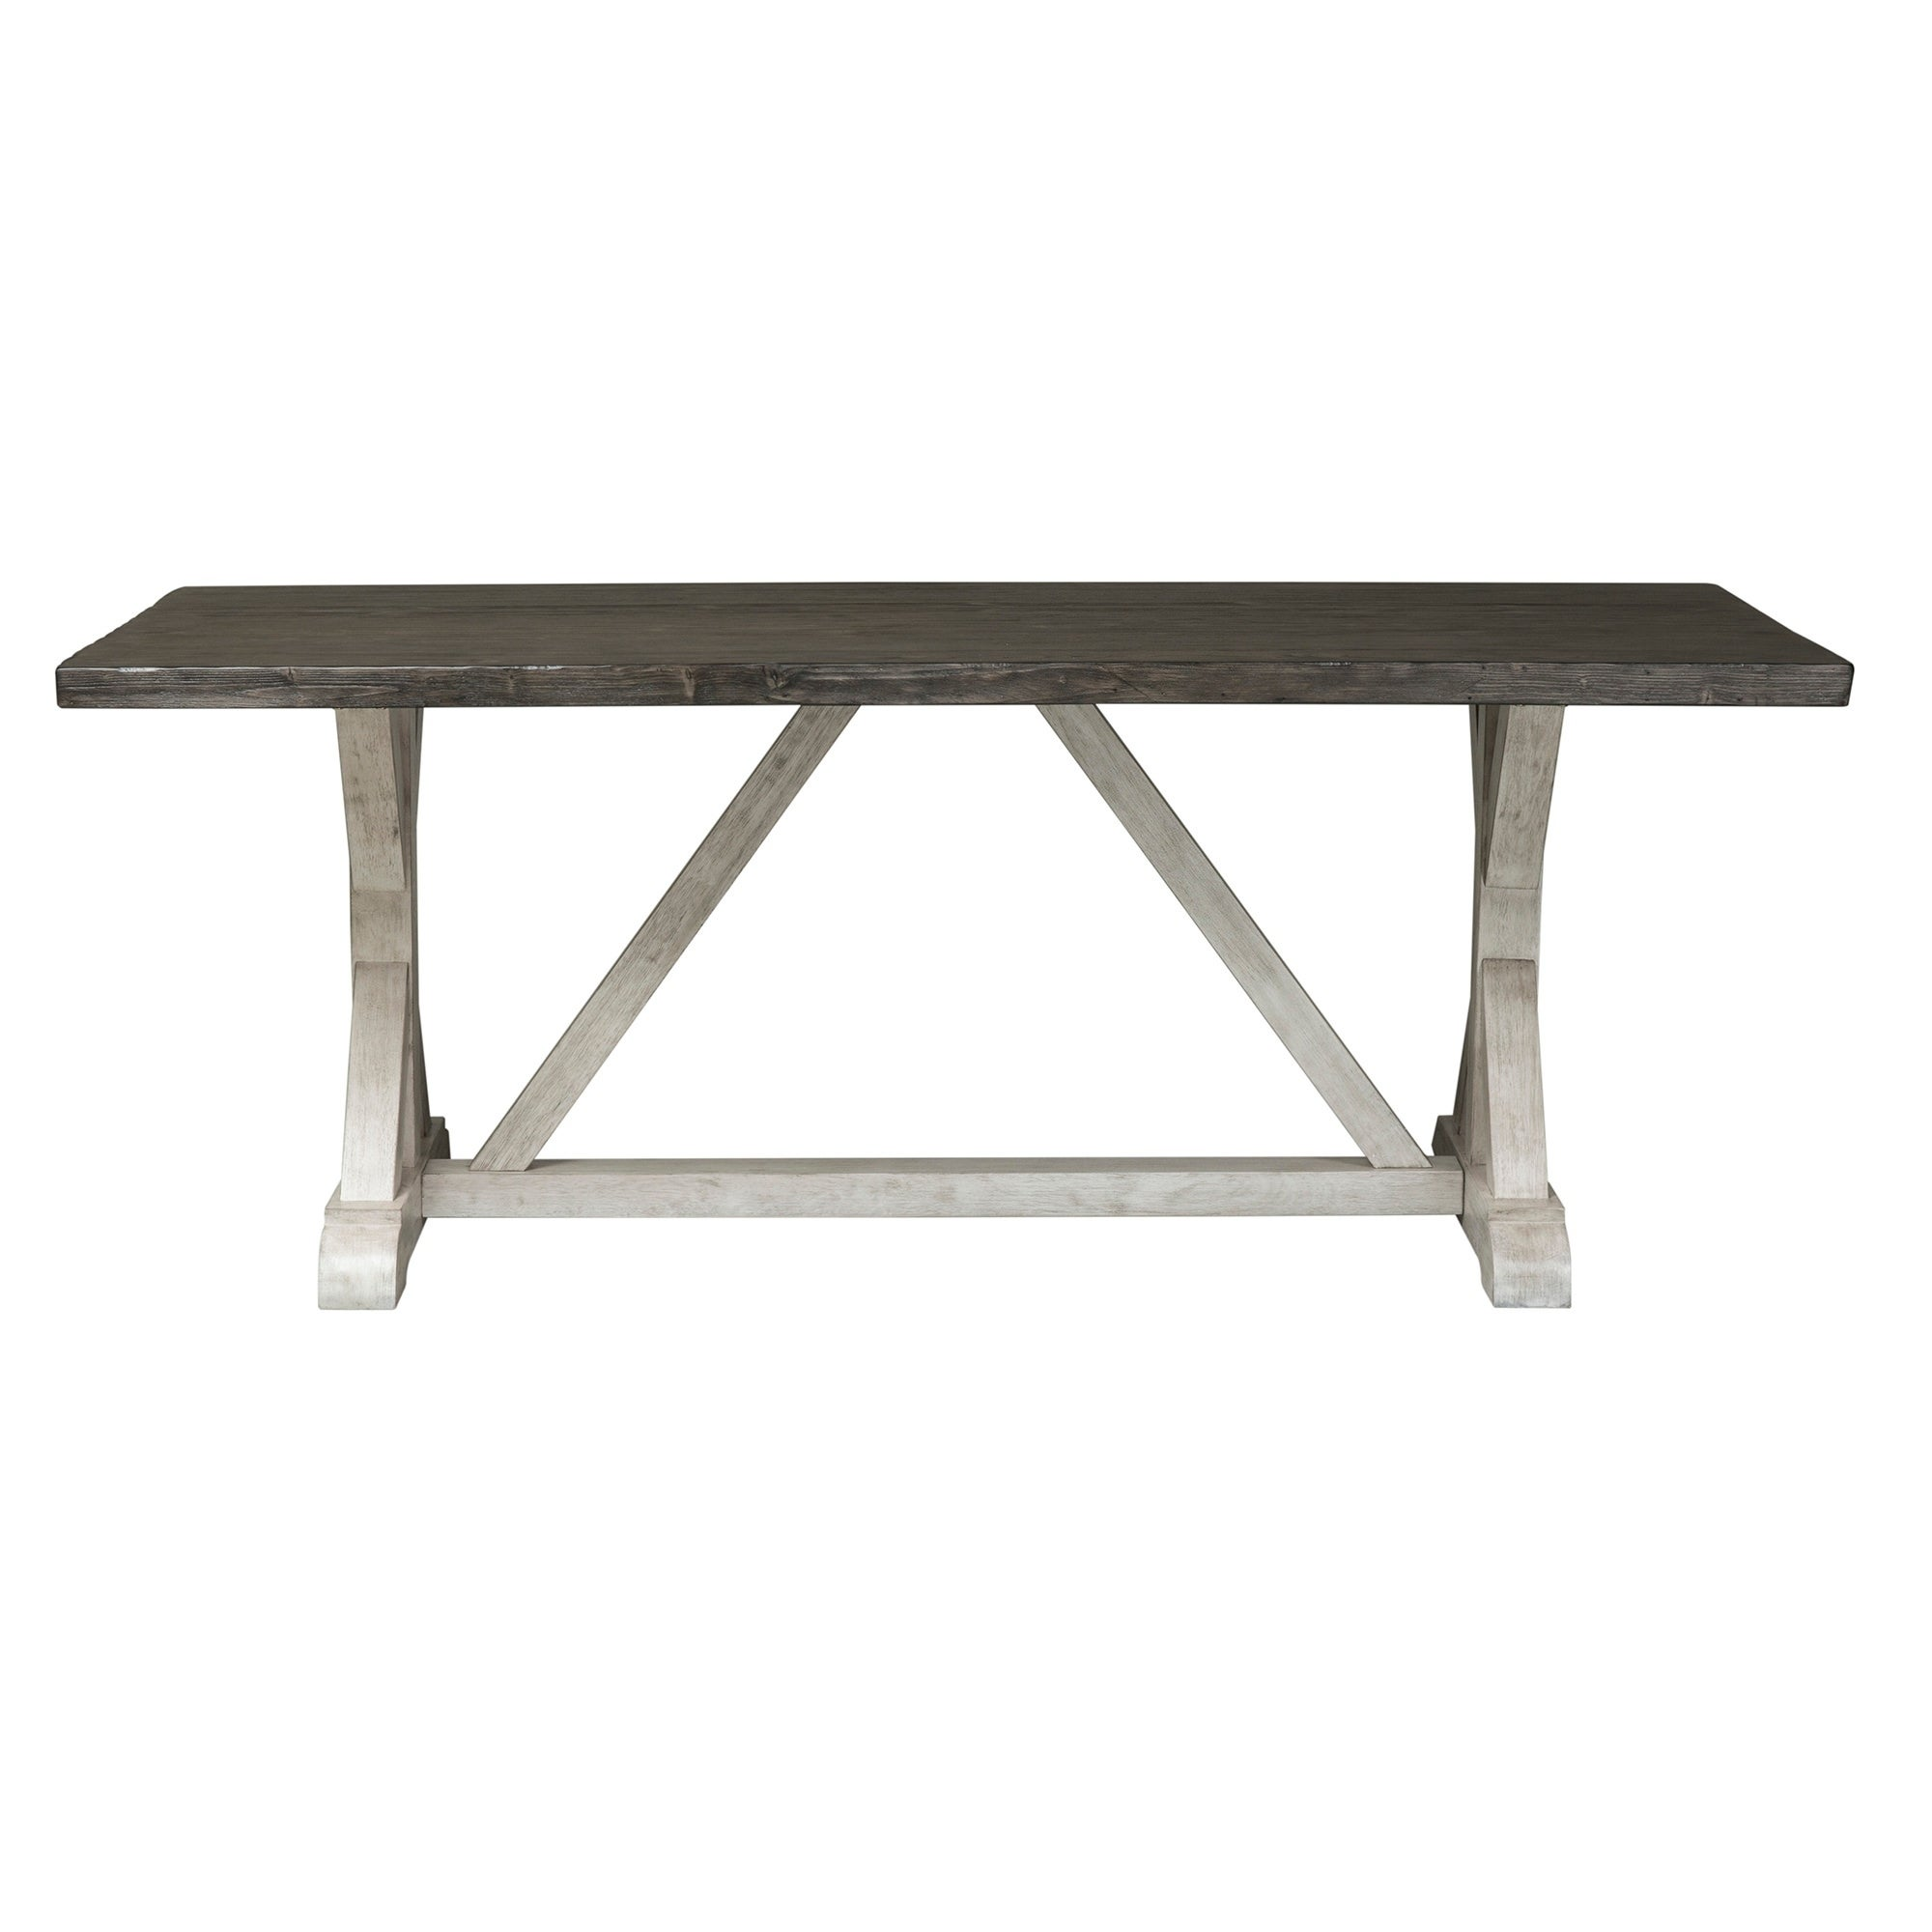 Willowrun Rustic White And Weathered Gray Trestle Table   Grey   Free  Shipping Today   Overstock   23557836